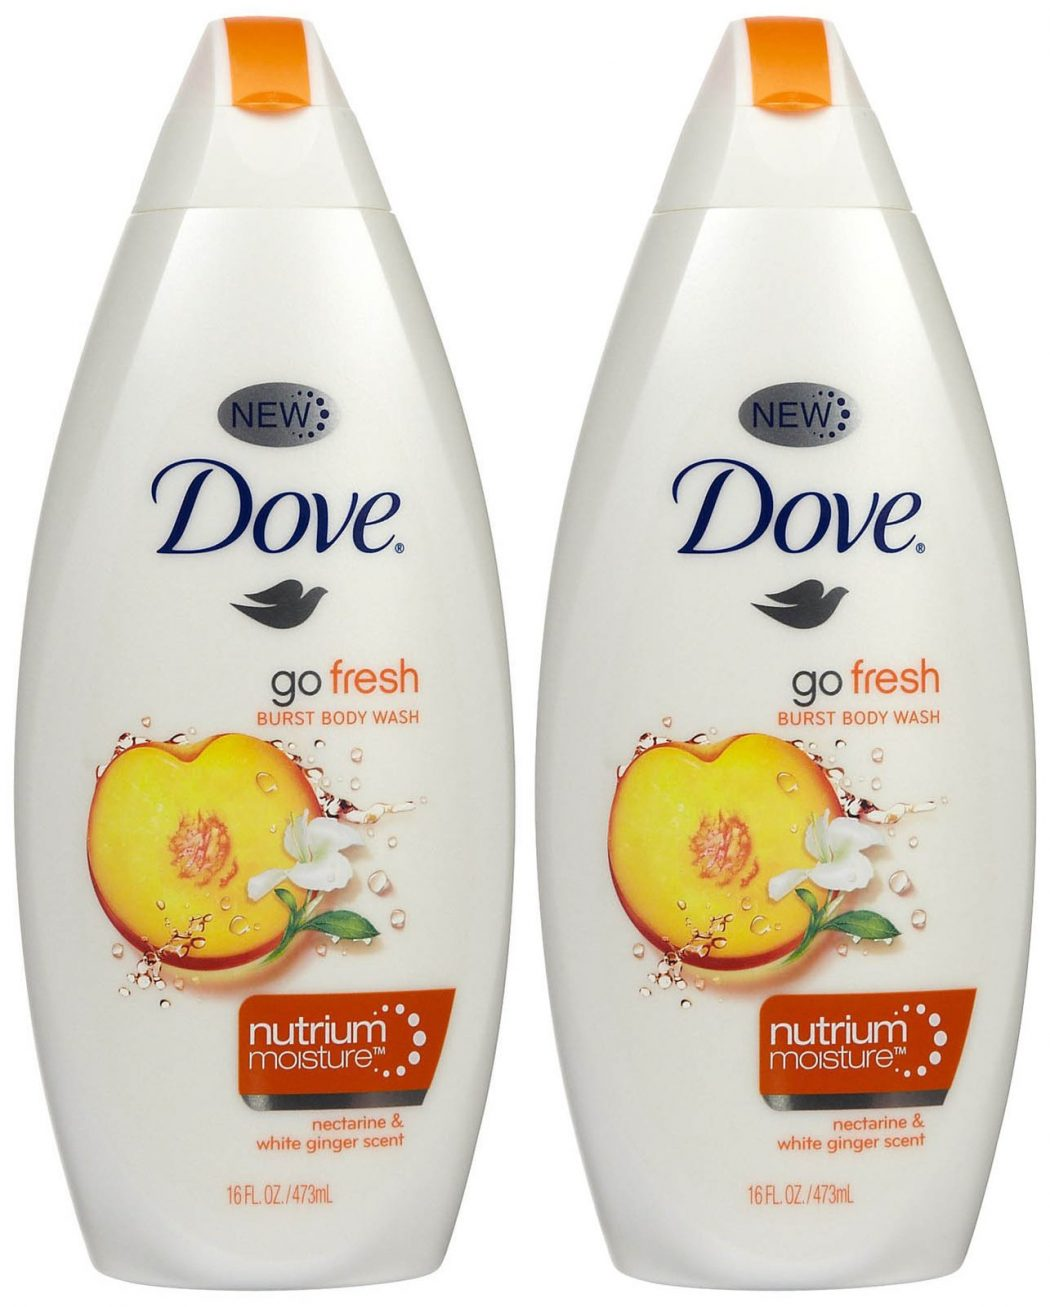 Dove-Body-Wash5 6 Best-Selling Women's Beauty Products in 2020